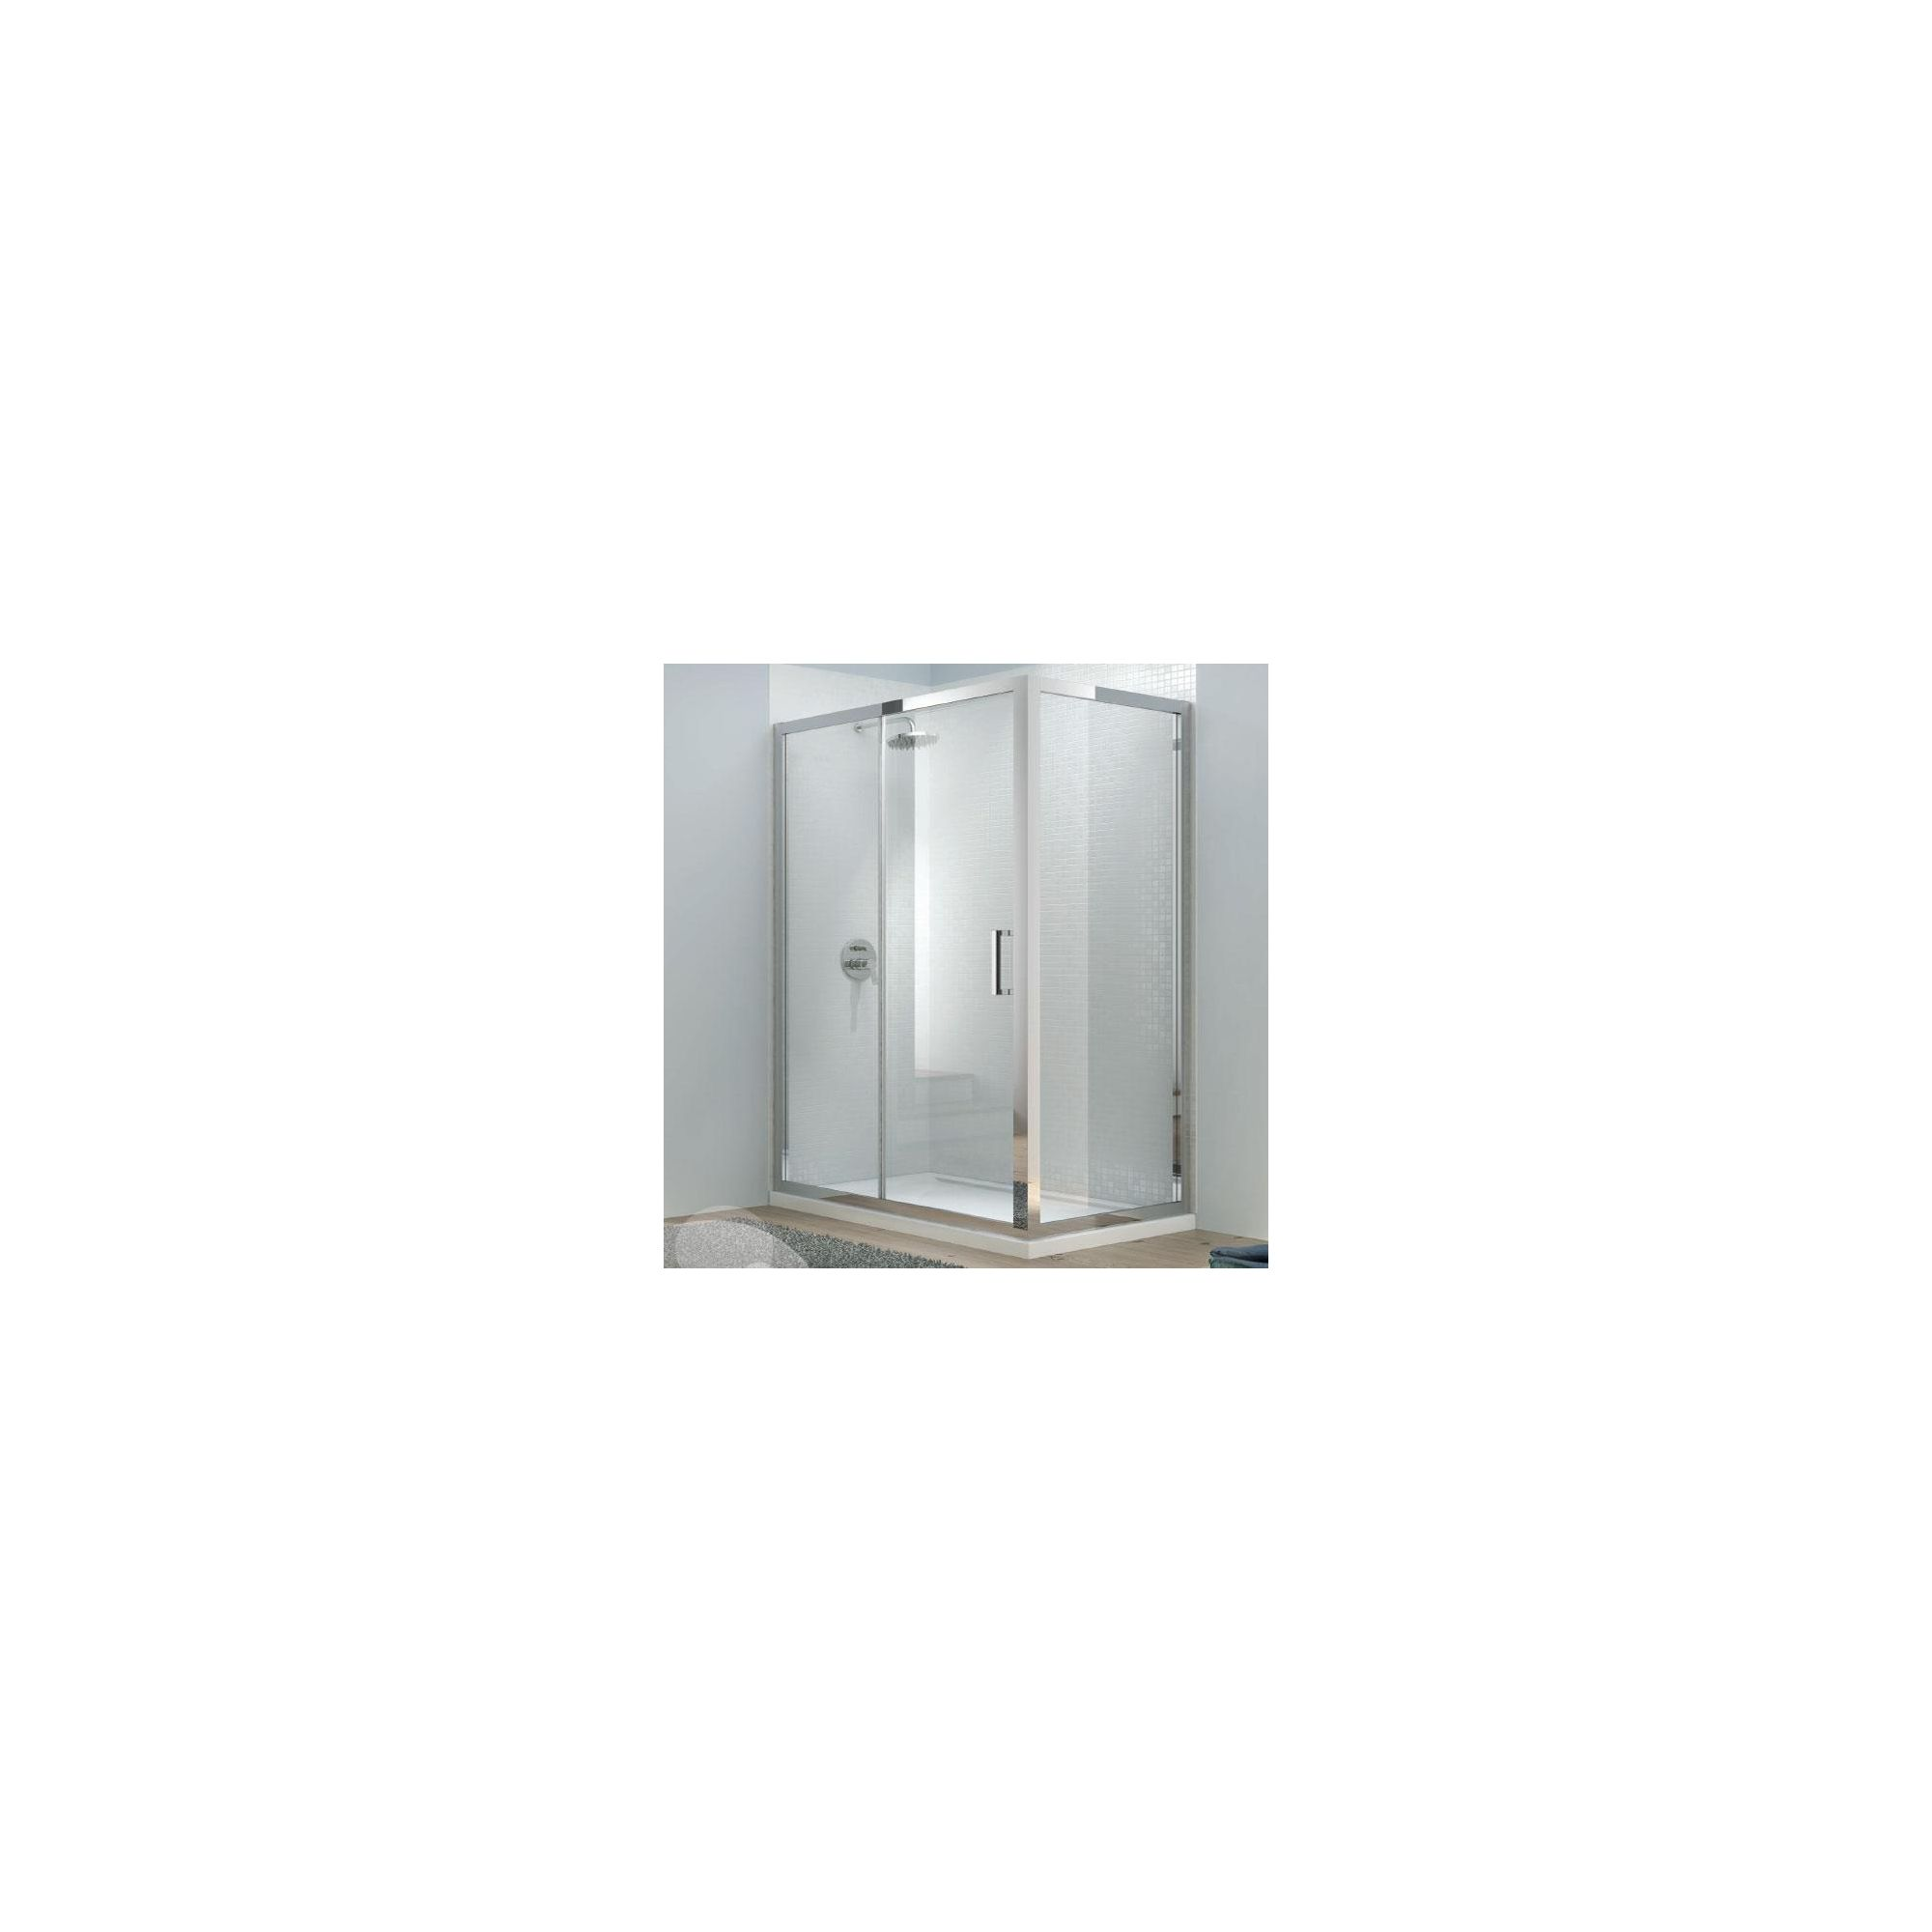 Merlyn Vivid Eight Sliding Door Shower Enclosure, 1100mm x 800mm, Low Profile Tray, 8mm Glass at Tesco Direct